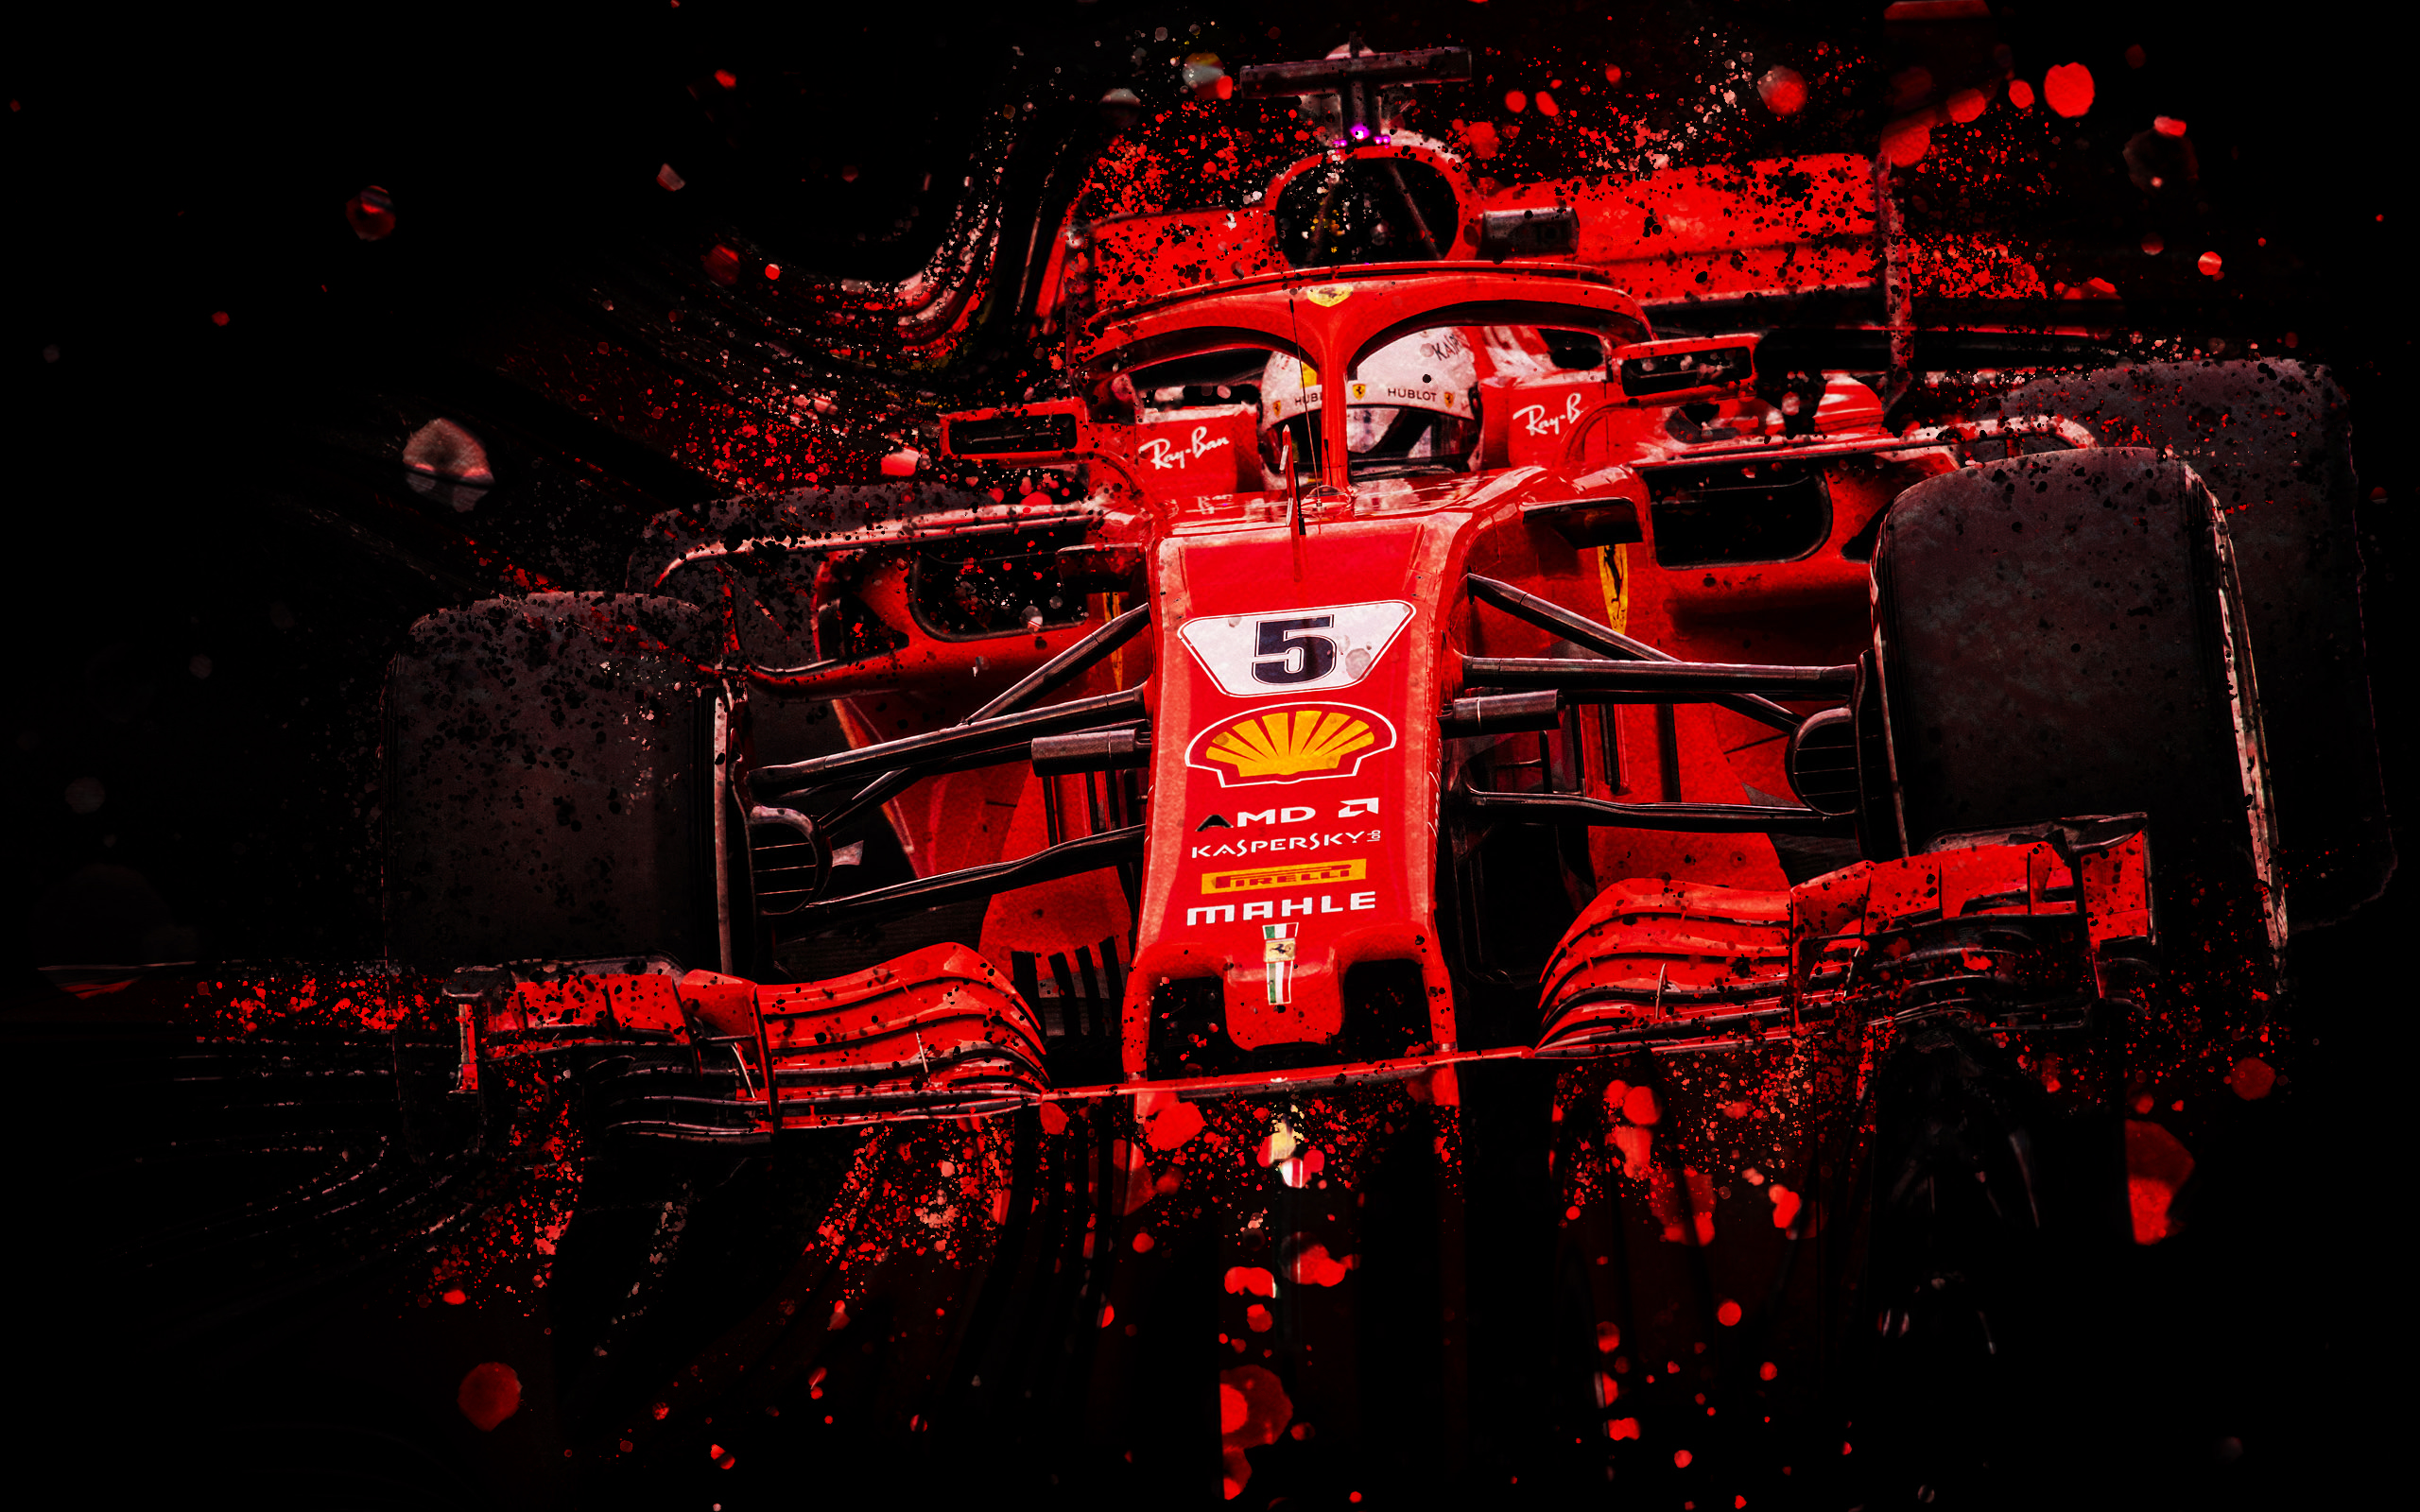 Ferrari F1 Wallpaper 2560x1600 Download Hd Wallpaper Wallpapertip